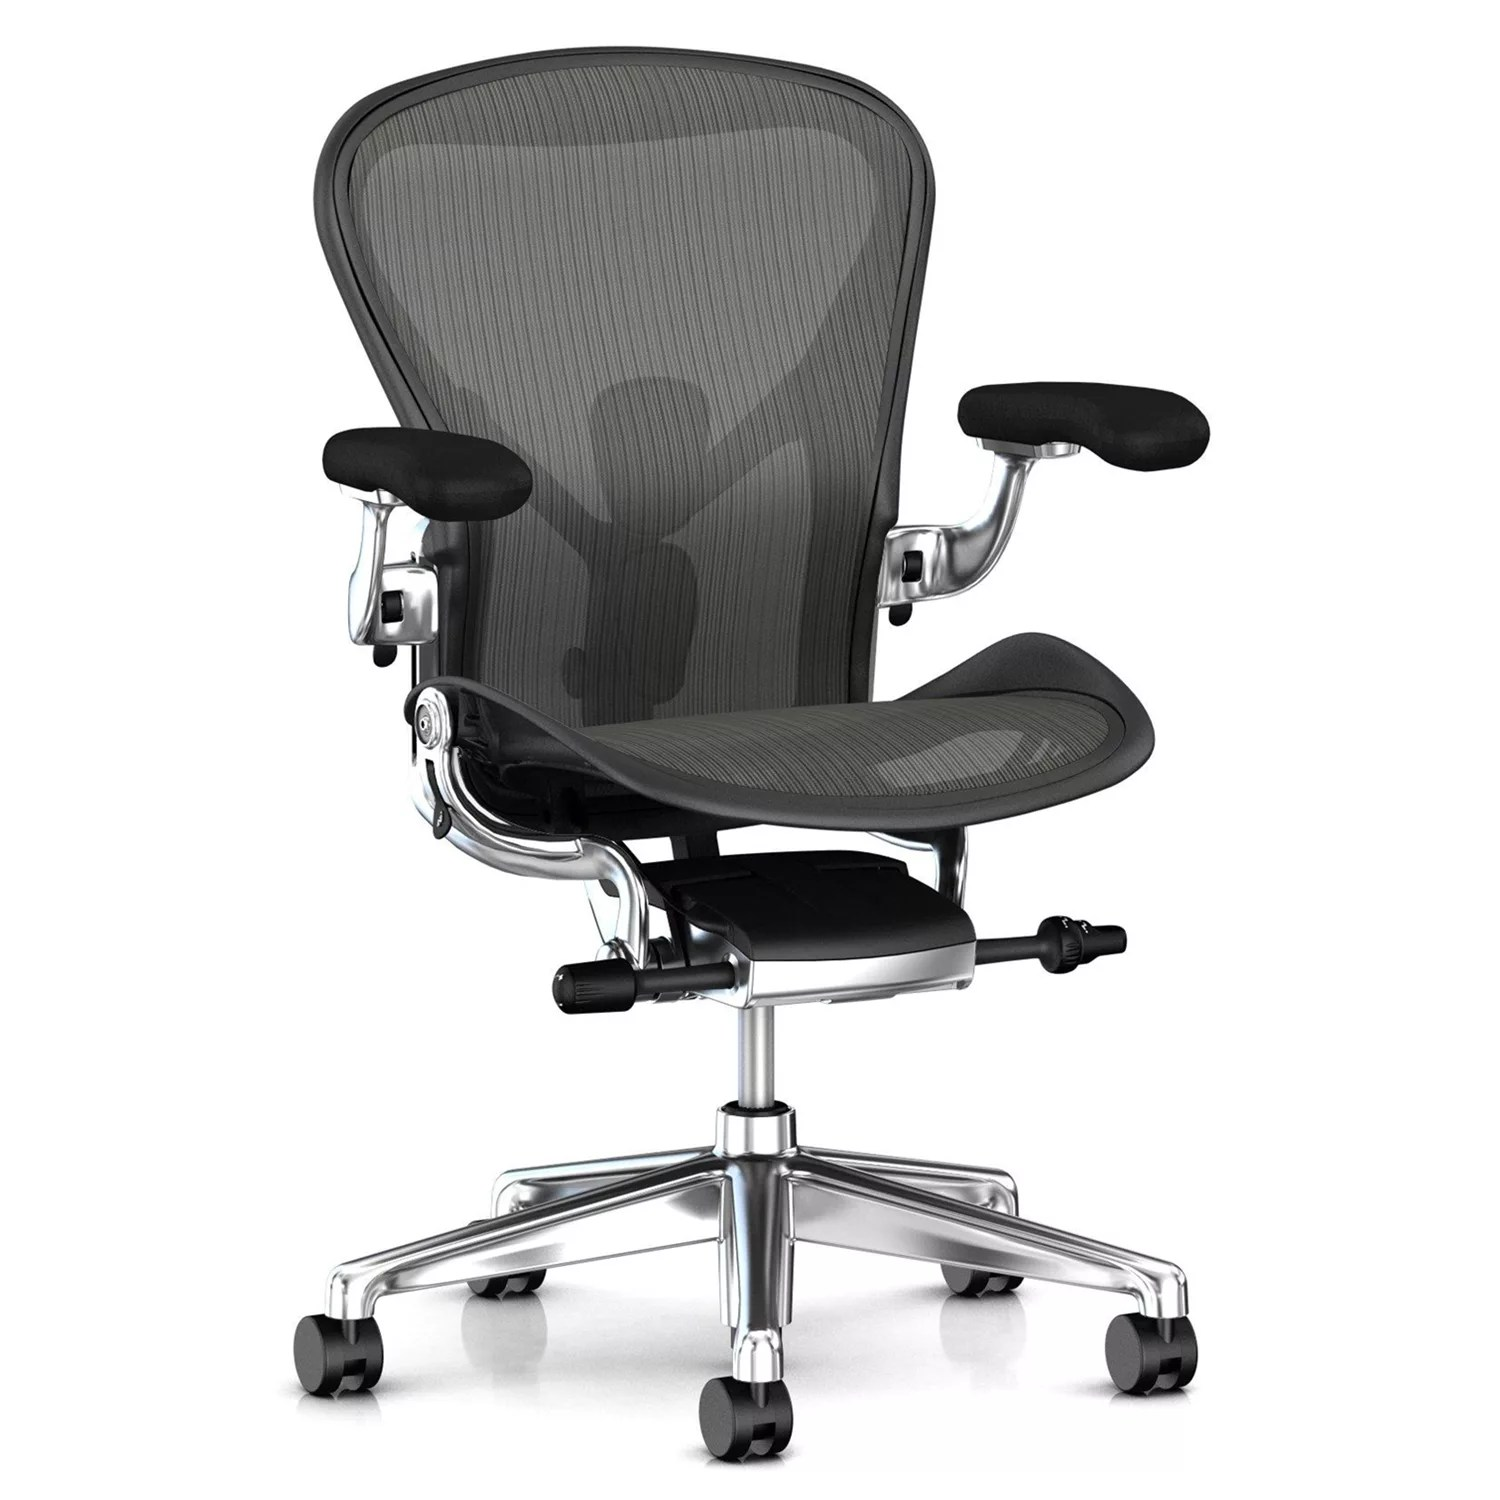 aeron office chairs outdoor recliner australia herman miller new chair graphite polished